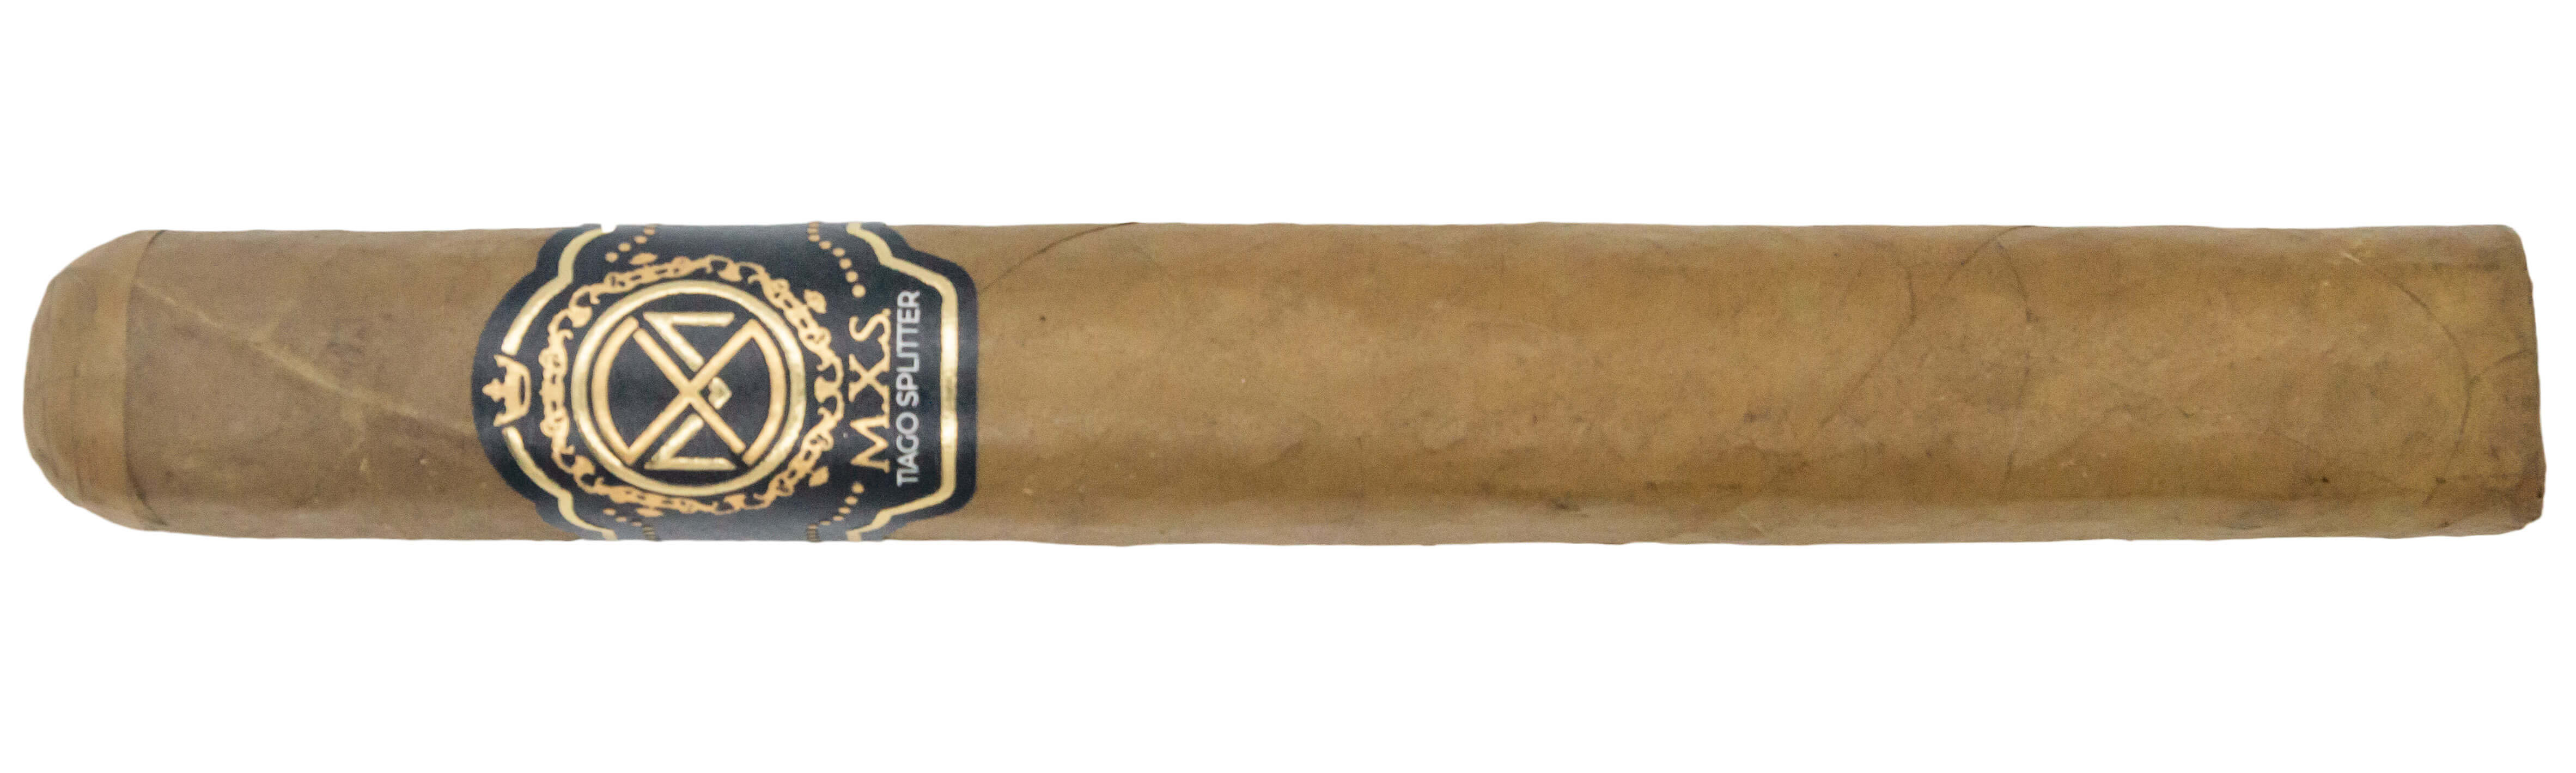 Blind Cigar Review: A.C.E. Prime | M.X.S. by Tiago Splitter Sublime